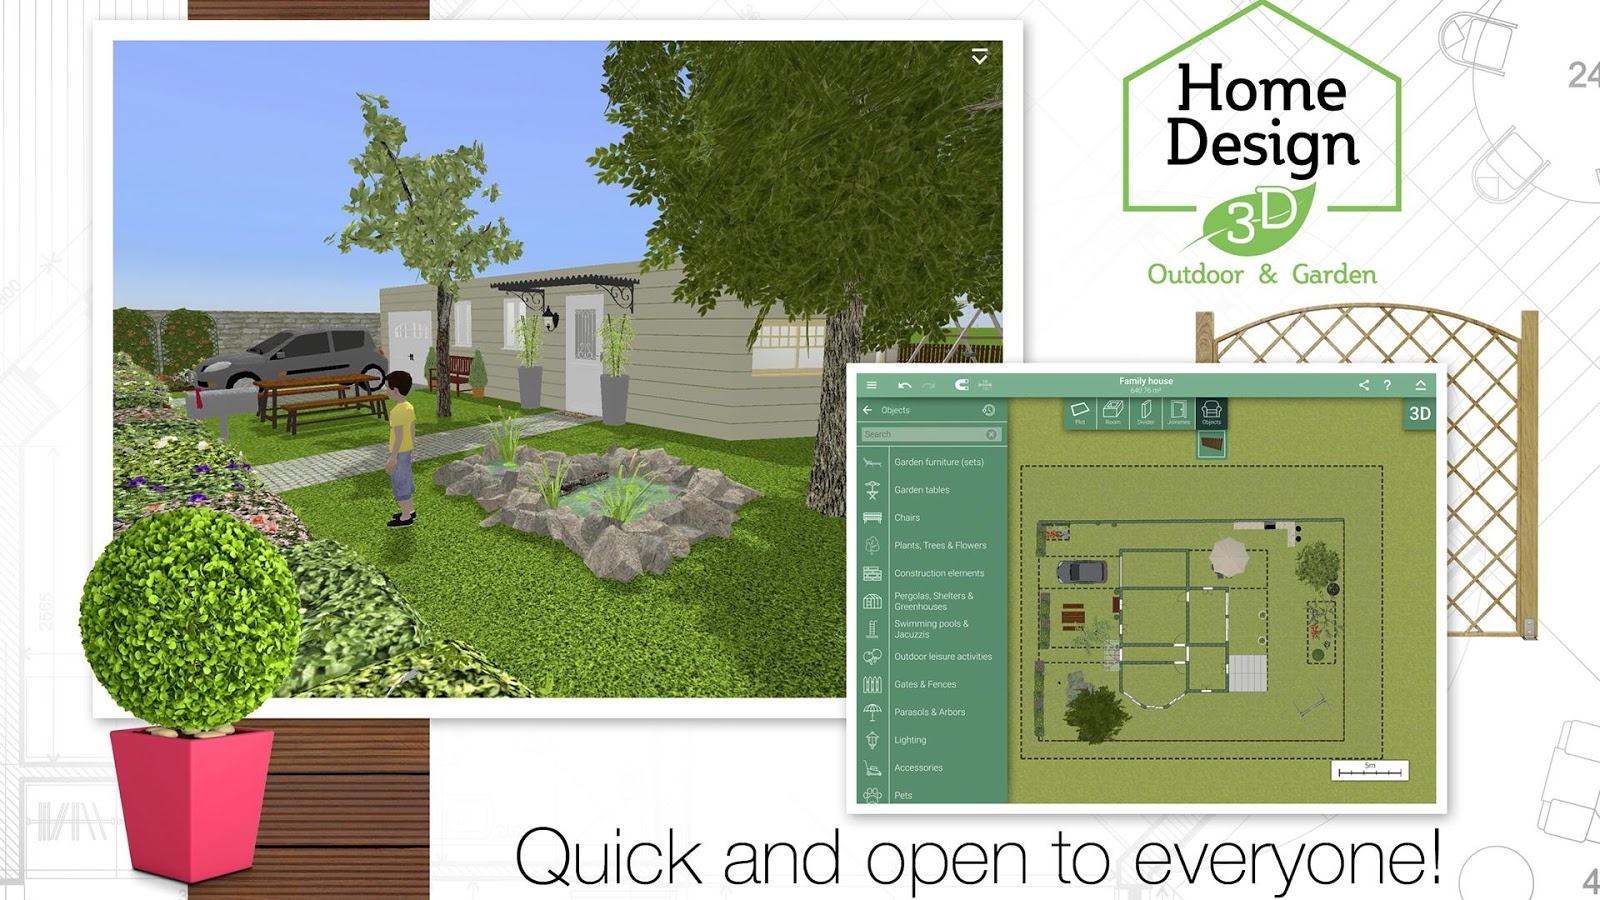 Home design 3d outdoor garden android apps on google play Free 3d home design software for pc